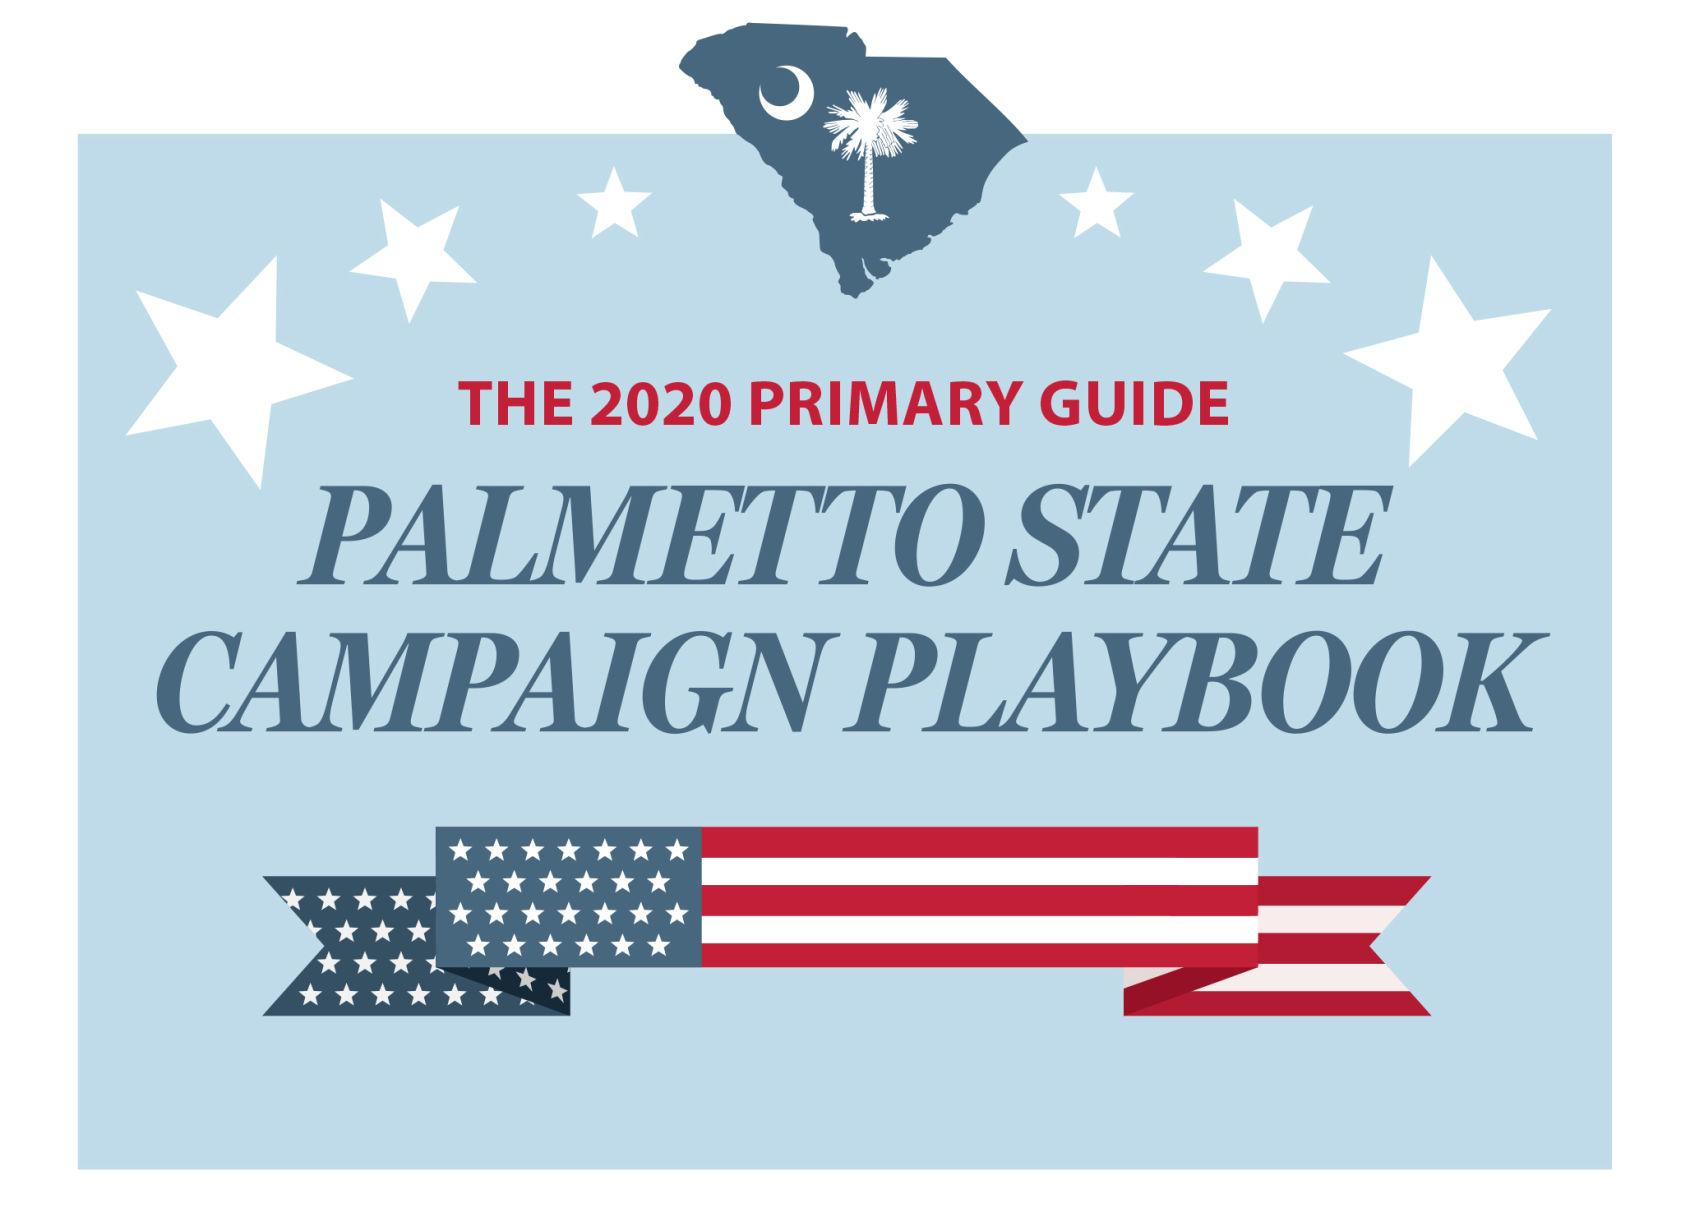 POST AND COURIER – So you're running for president in 2020 – now what? A guide to campaigning in South Carolina